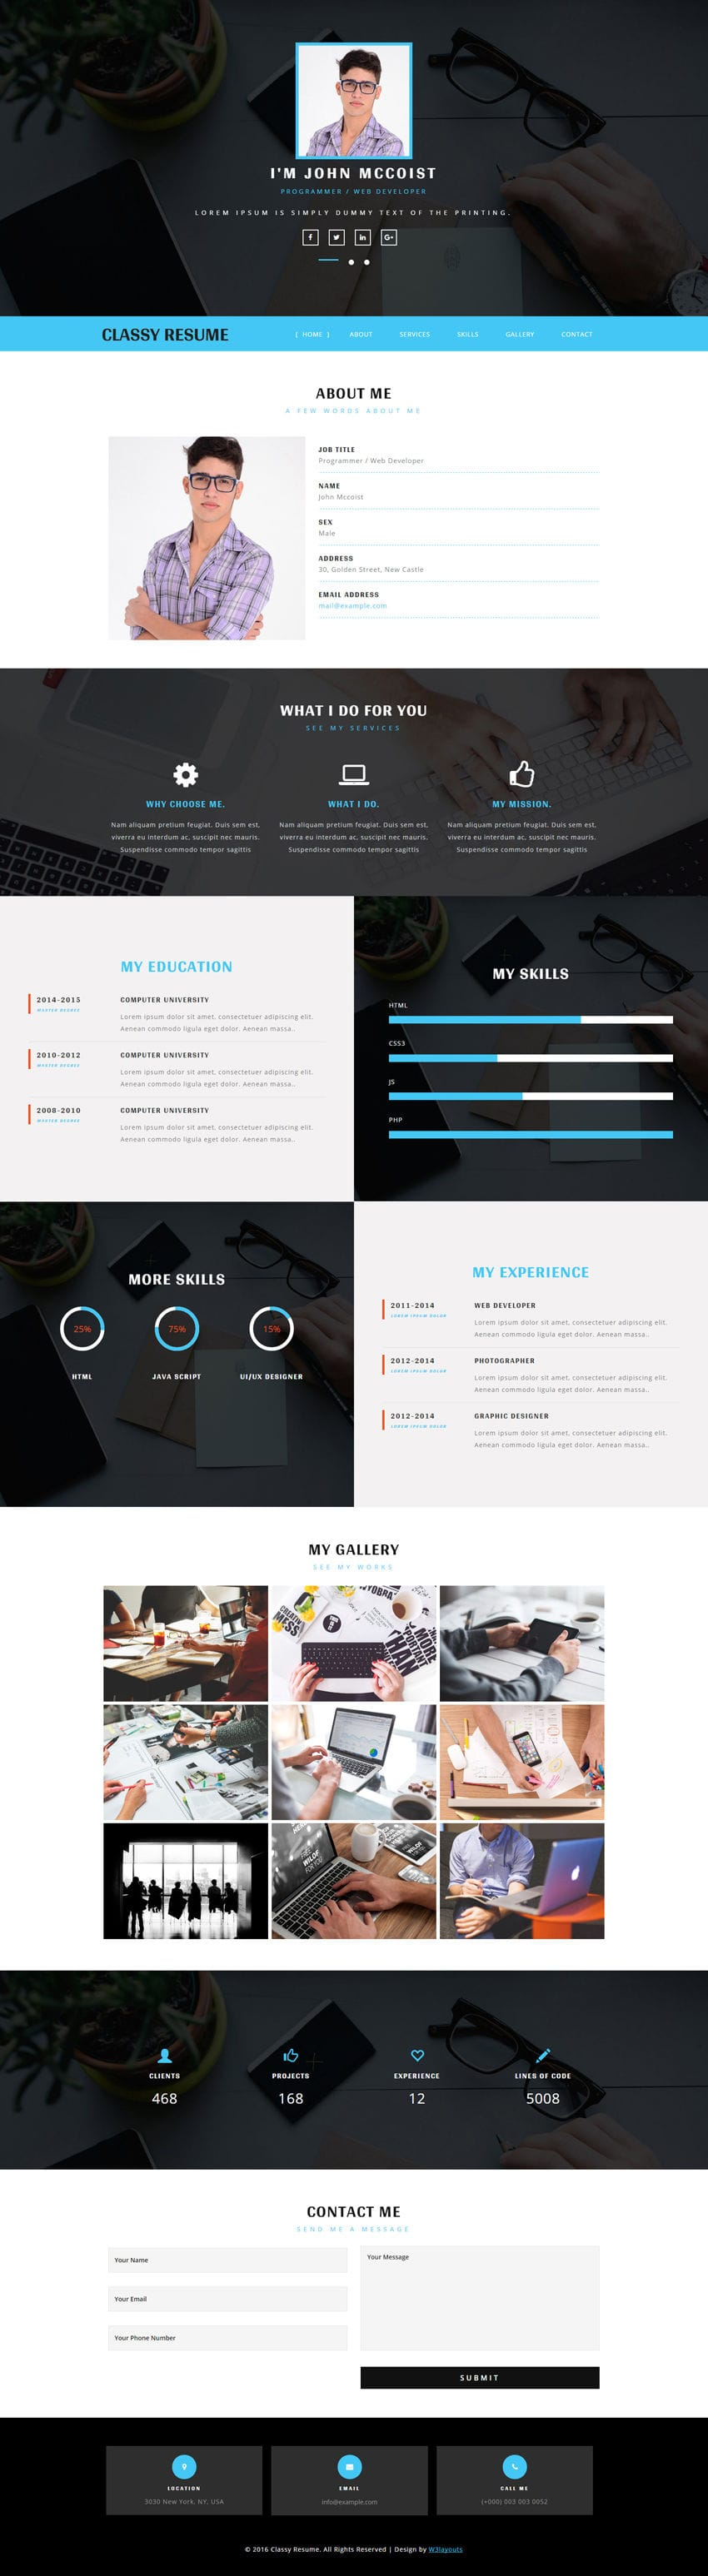 classy resume a personal category bootstrap responsive web template - Resume Web Template